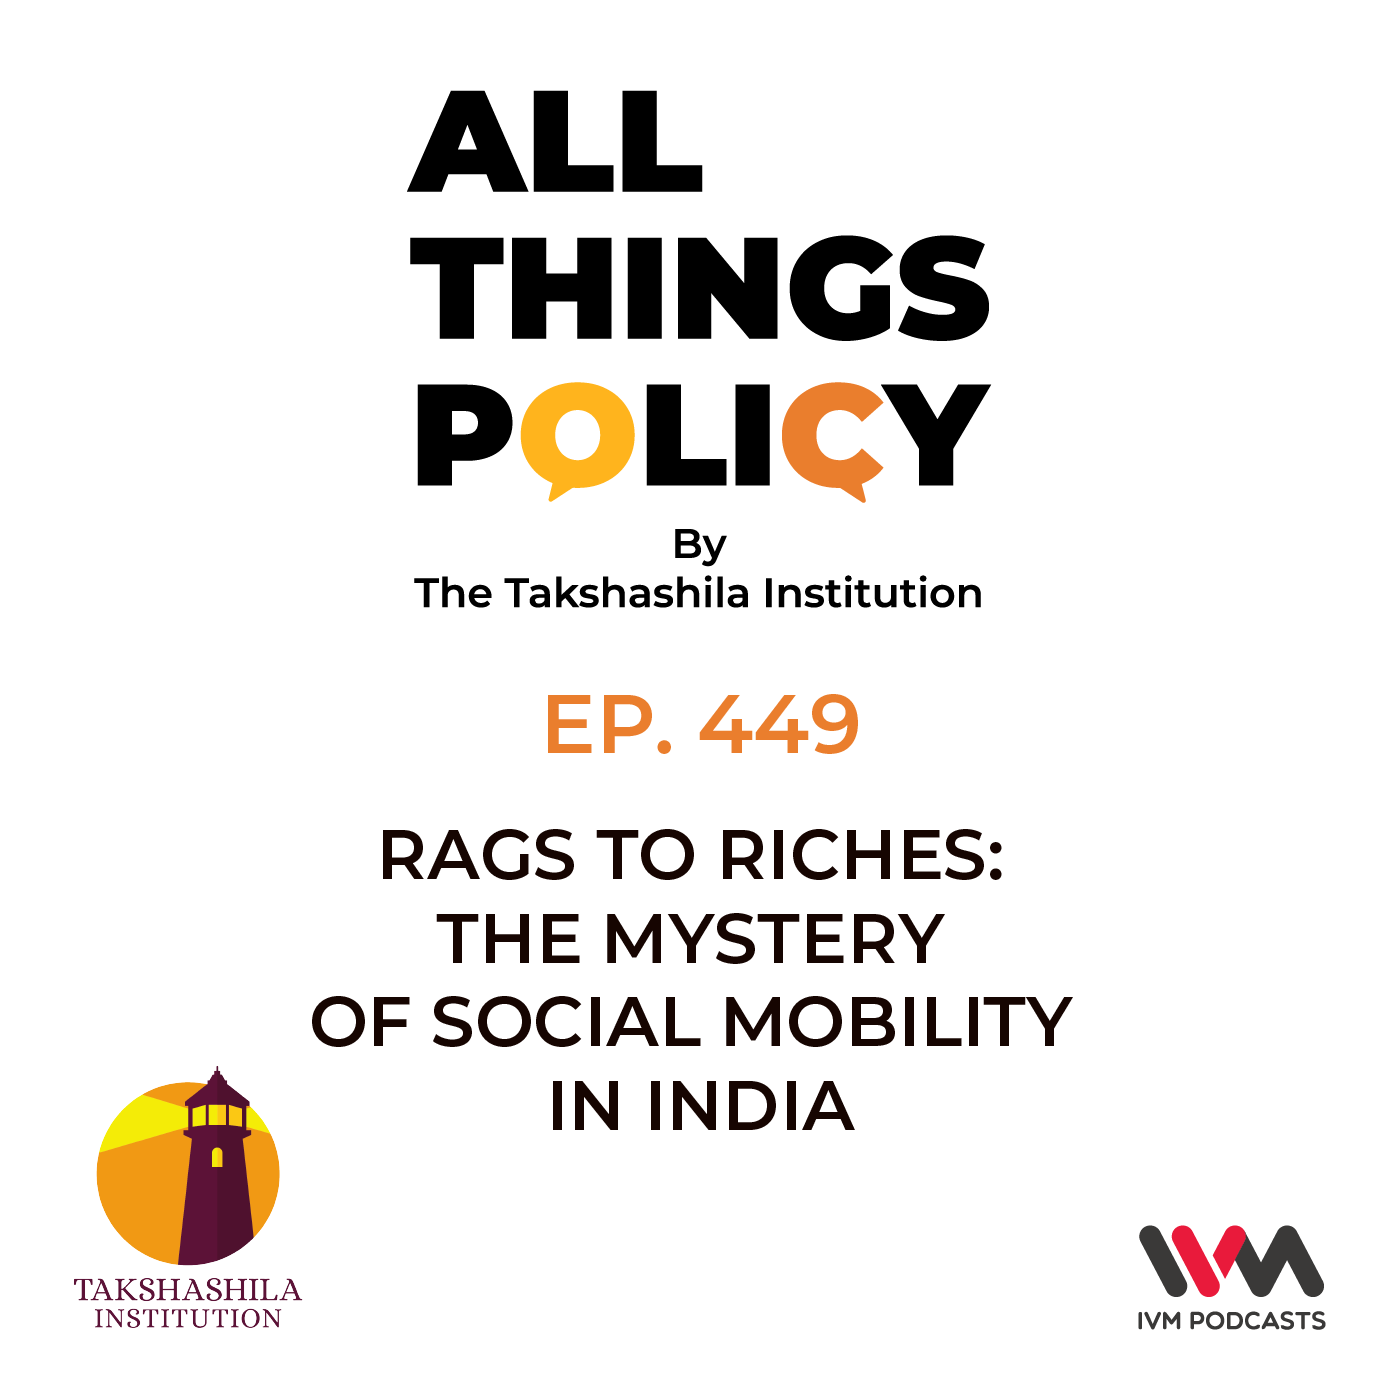 Ep. 449: Rags to Riches: The Mystery of Social Mobility in India